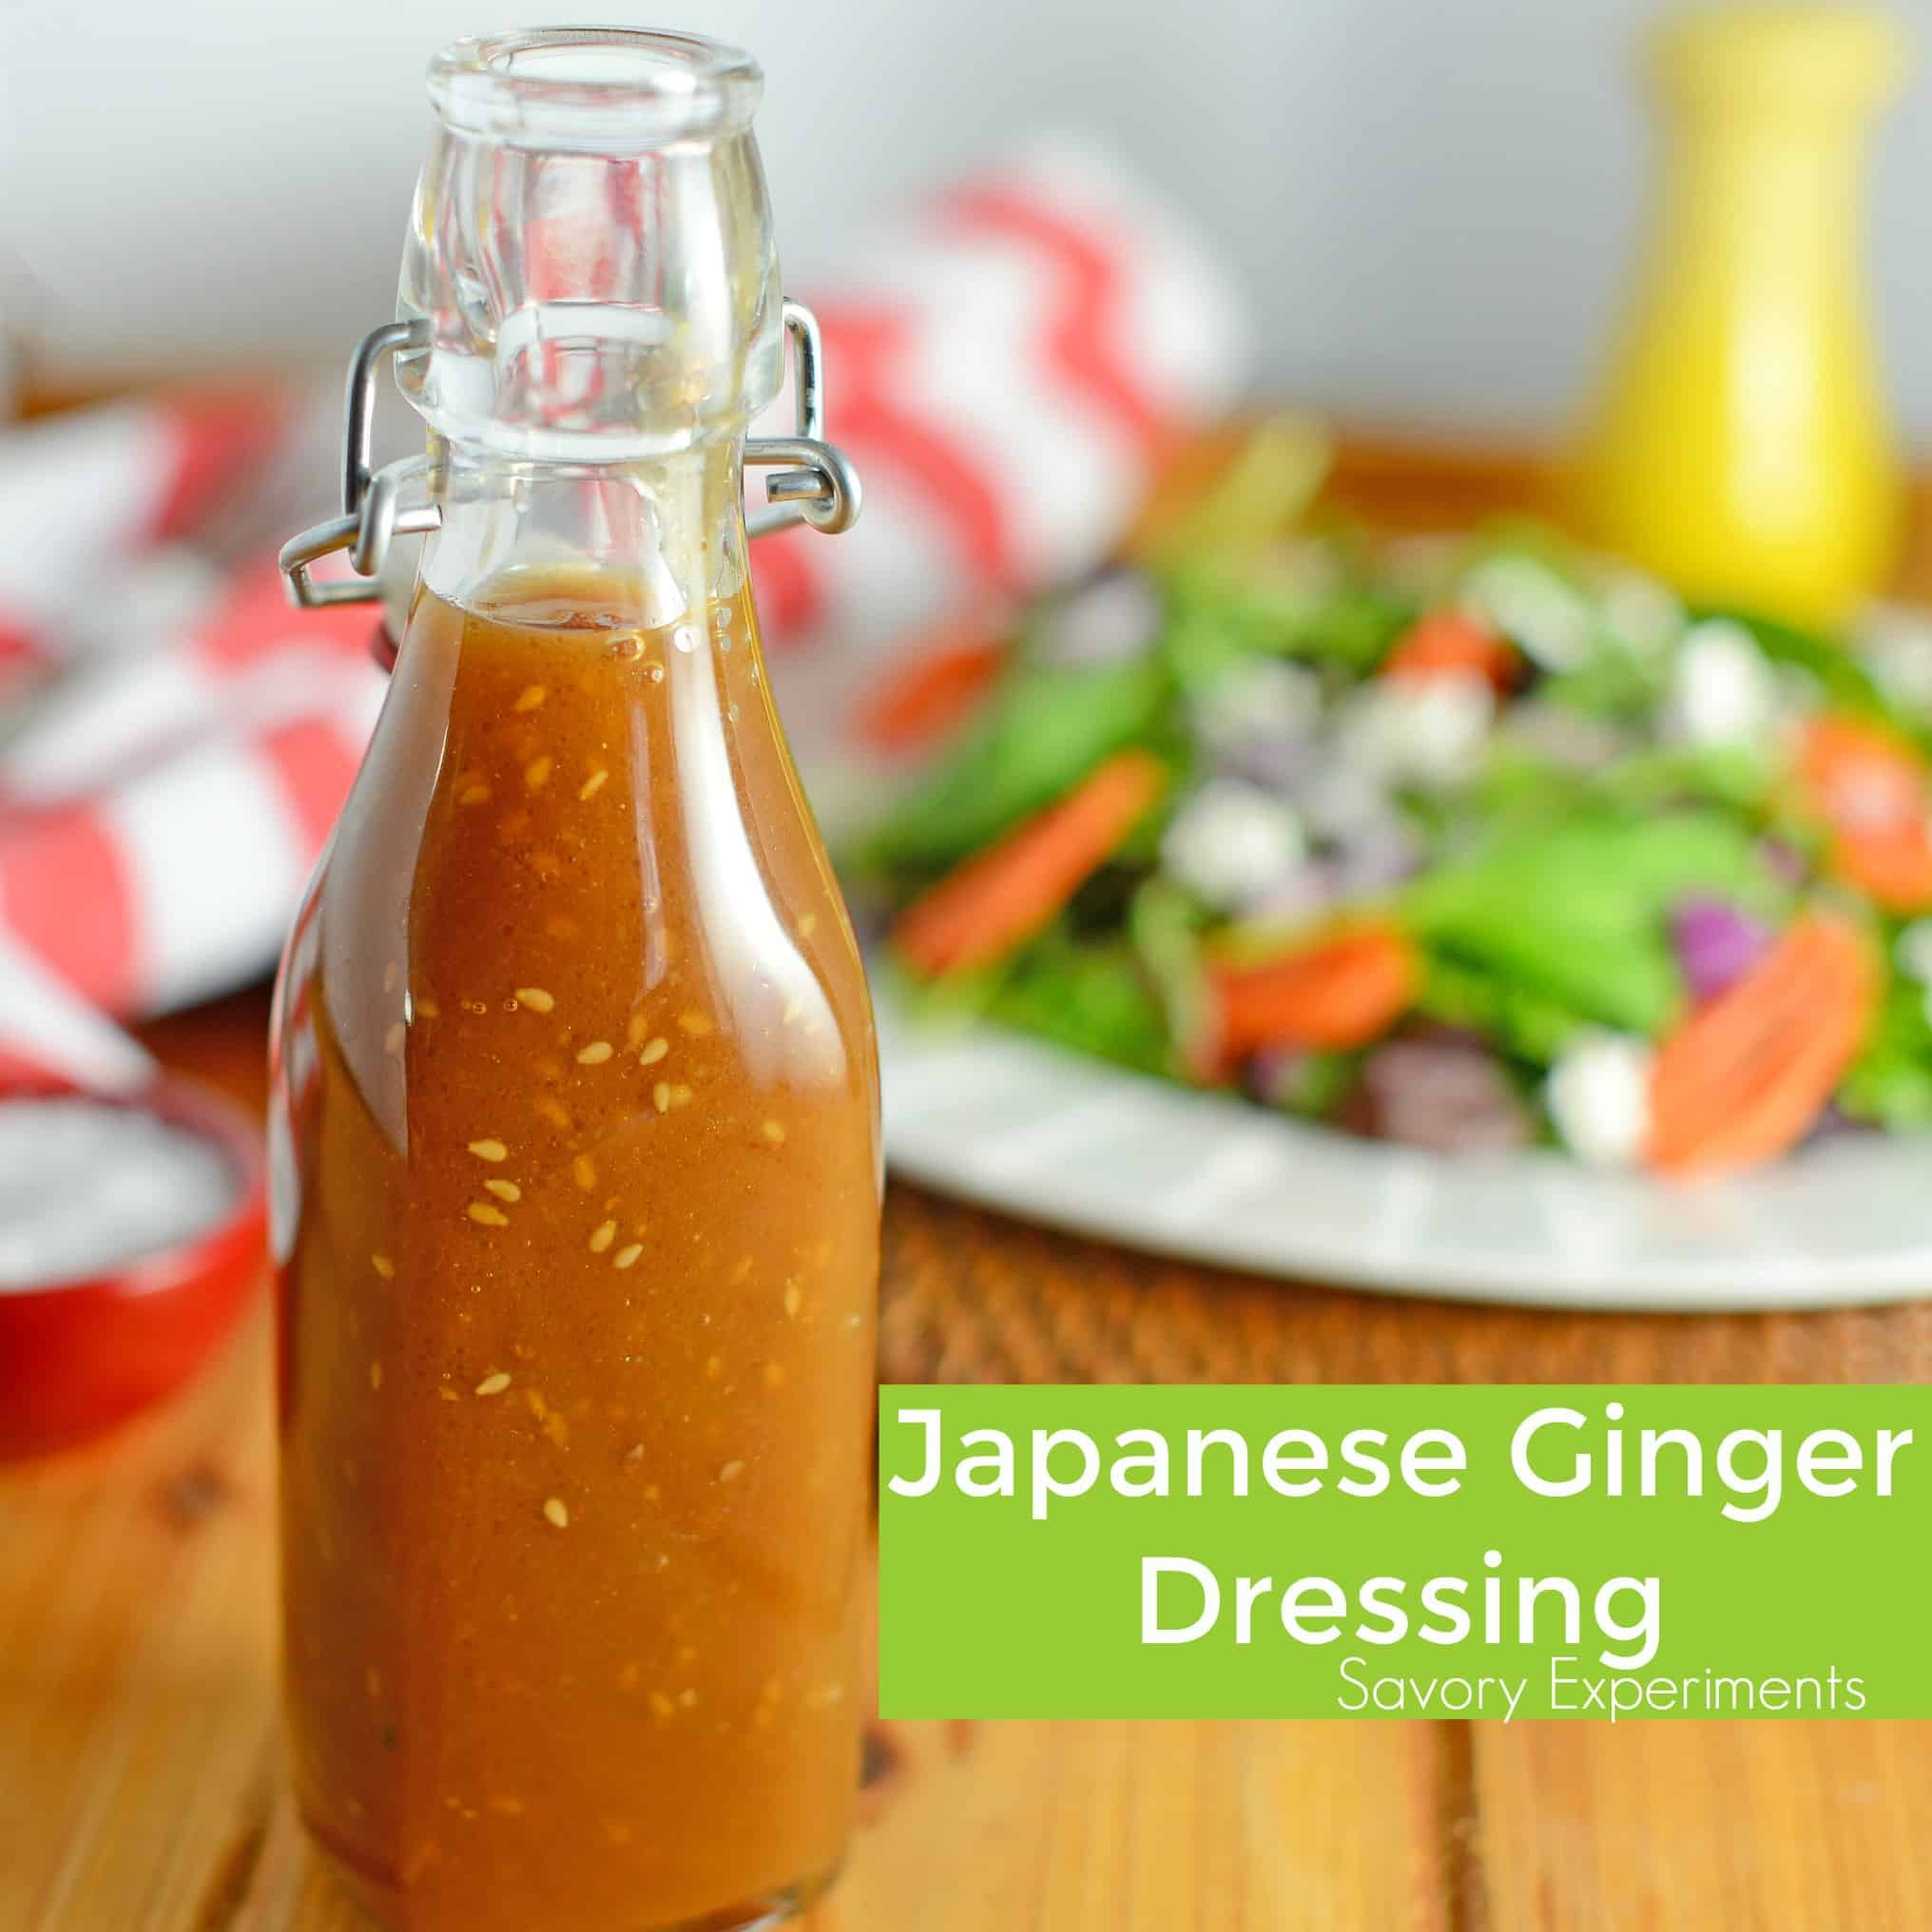 Where to buy japanese ginger dressing